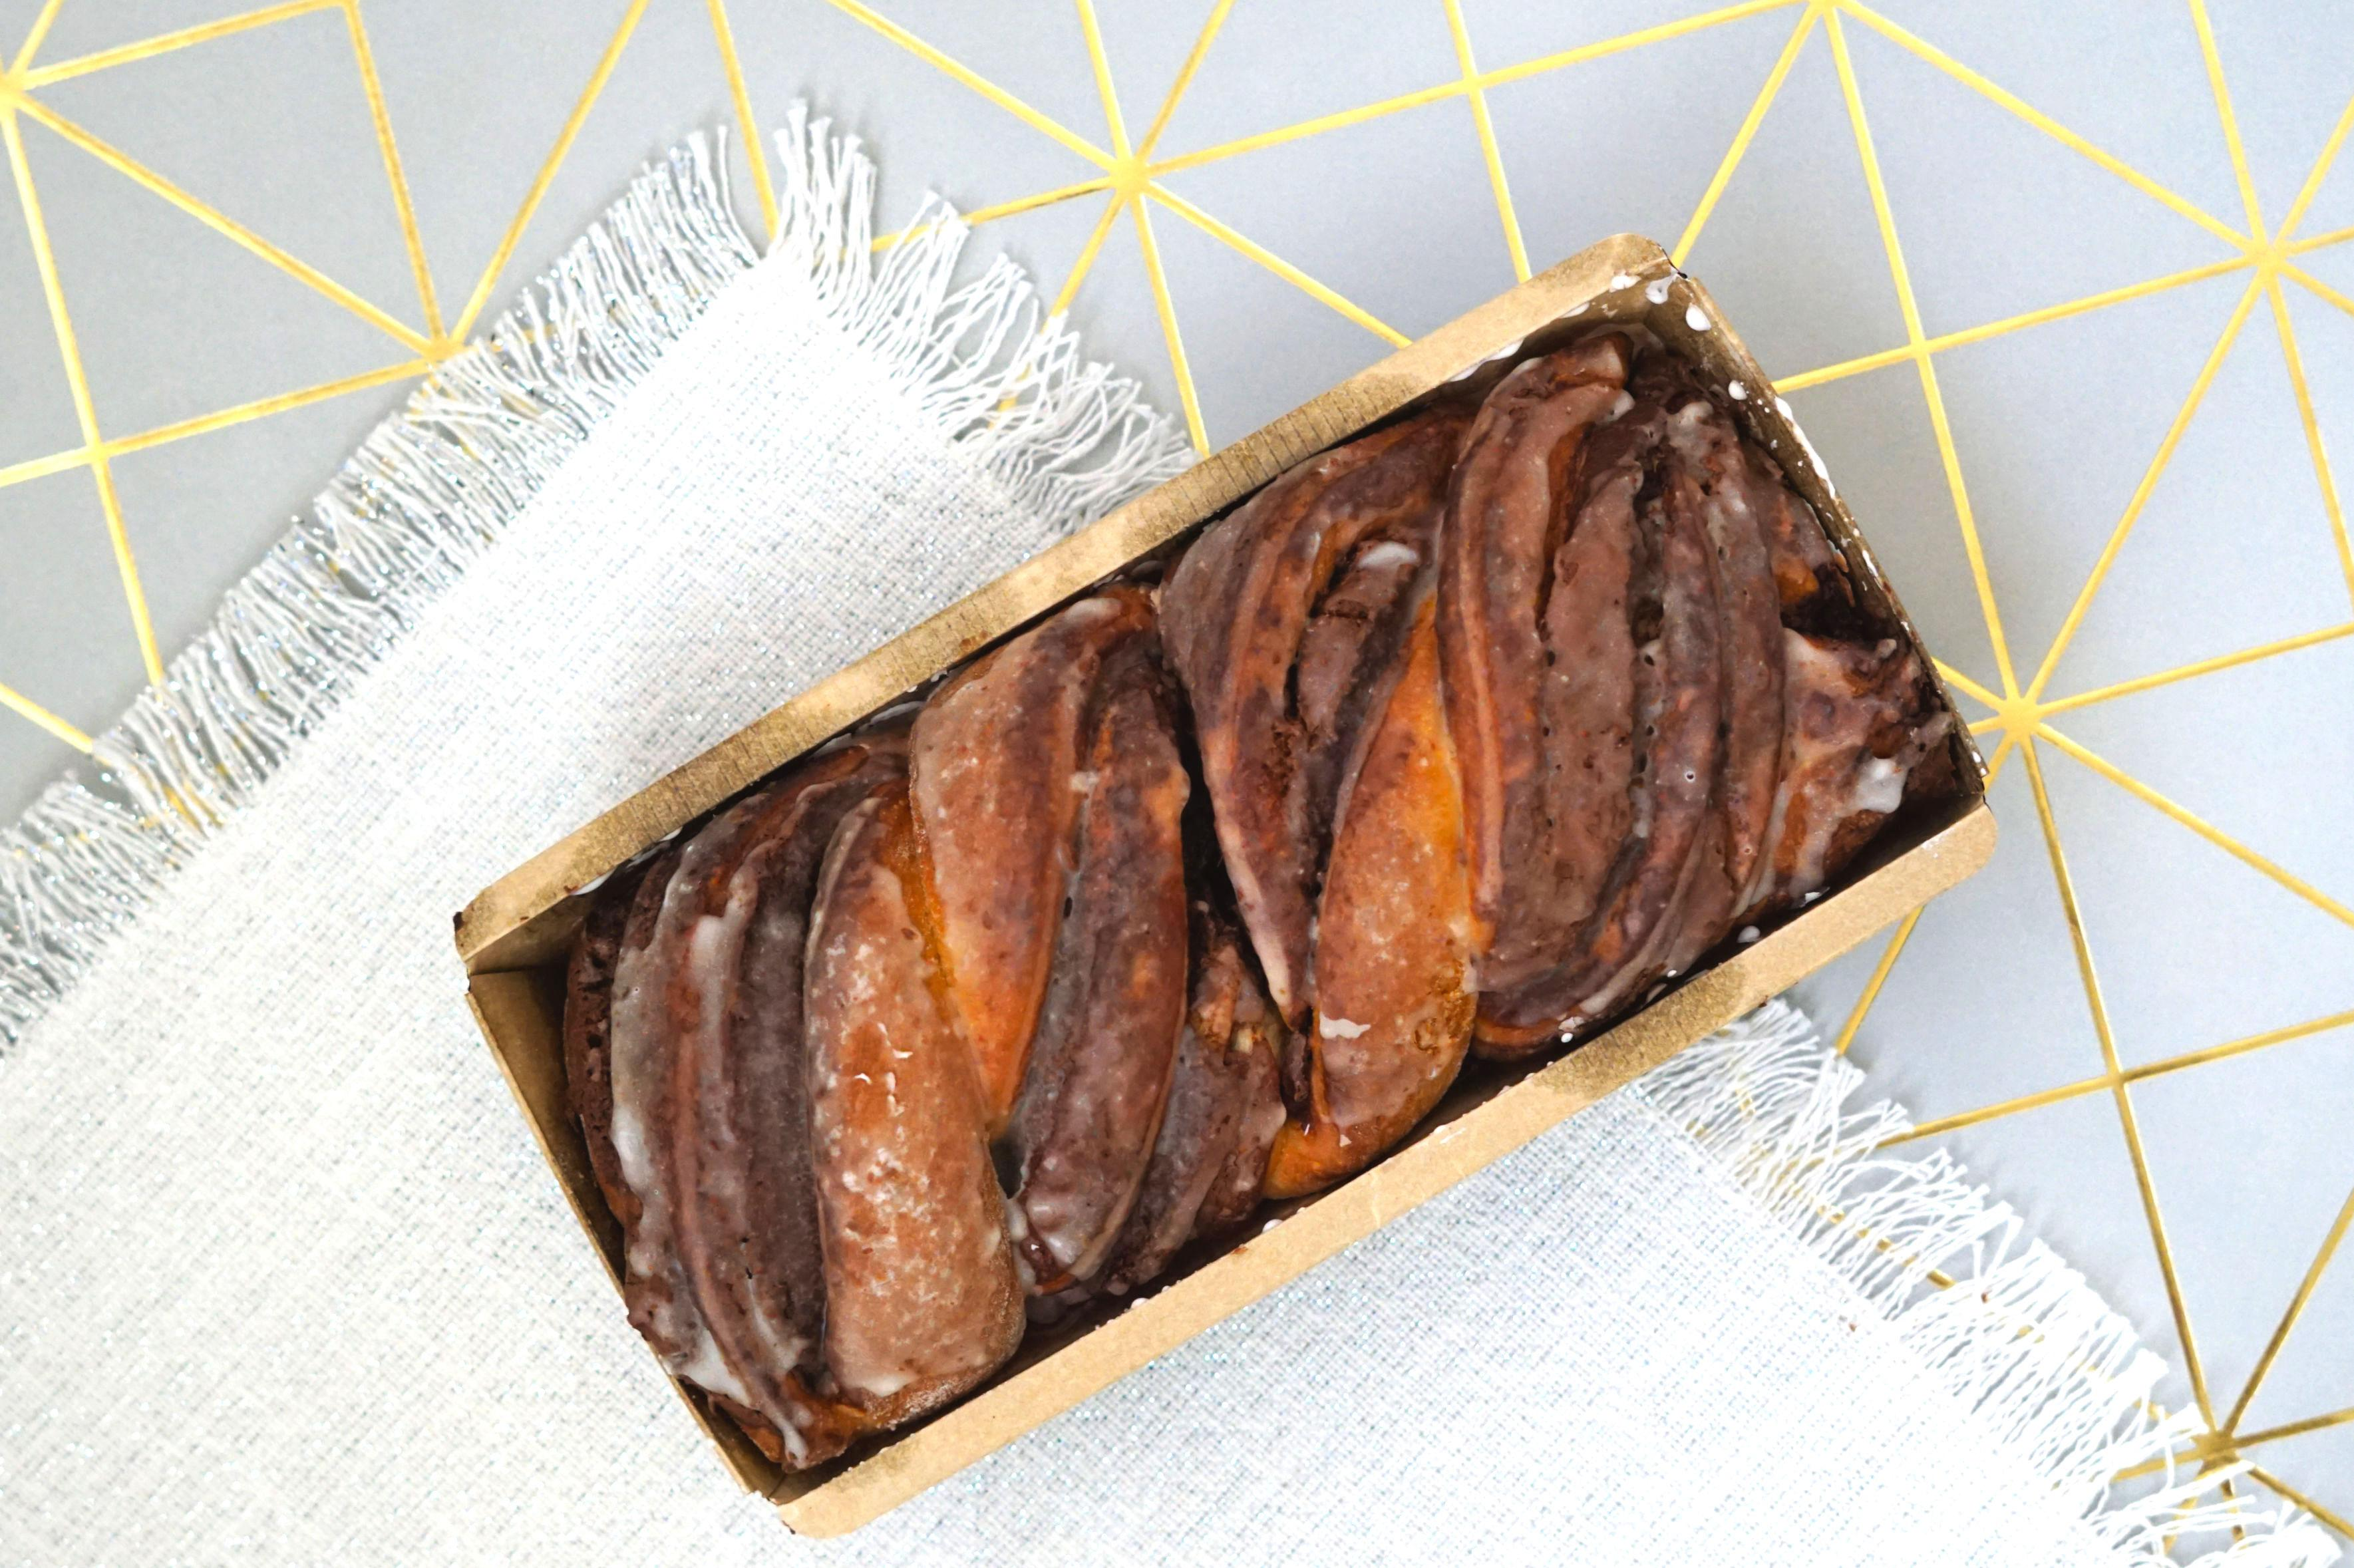 Nutella Babka from Buzz Bakeshop { }// Price: $17 // Buy in store or online // https://buzzbakeshop.com/ // (Image: Rose Collins)